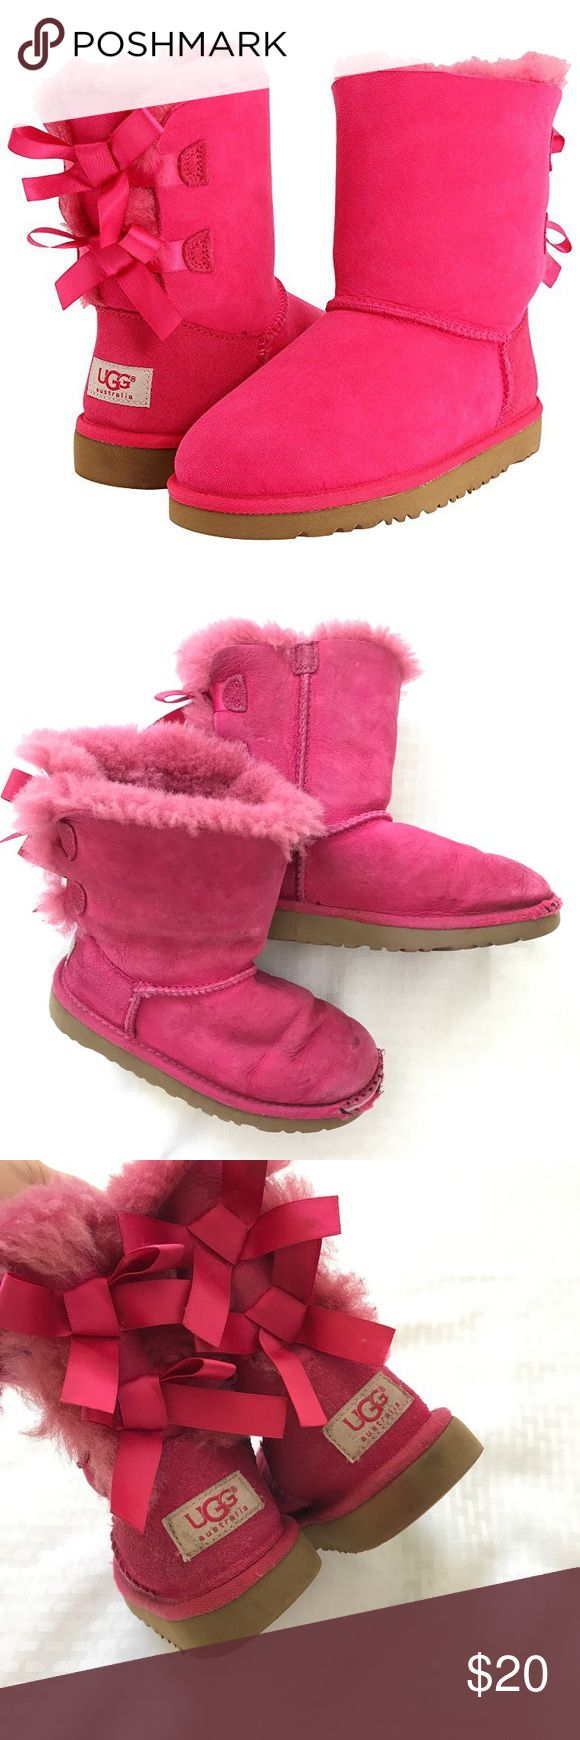 UGGS BAILEY BOW PINK LACE UP GIRLS BOOTS Such cute little girls winter shoes! Obviously in play condition but still lots of life left in them. Size 11. Check out my other kids items and feel free to ask any questions! Offers always welcome! UGG Shoes Boots